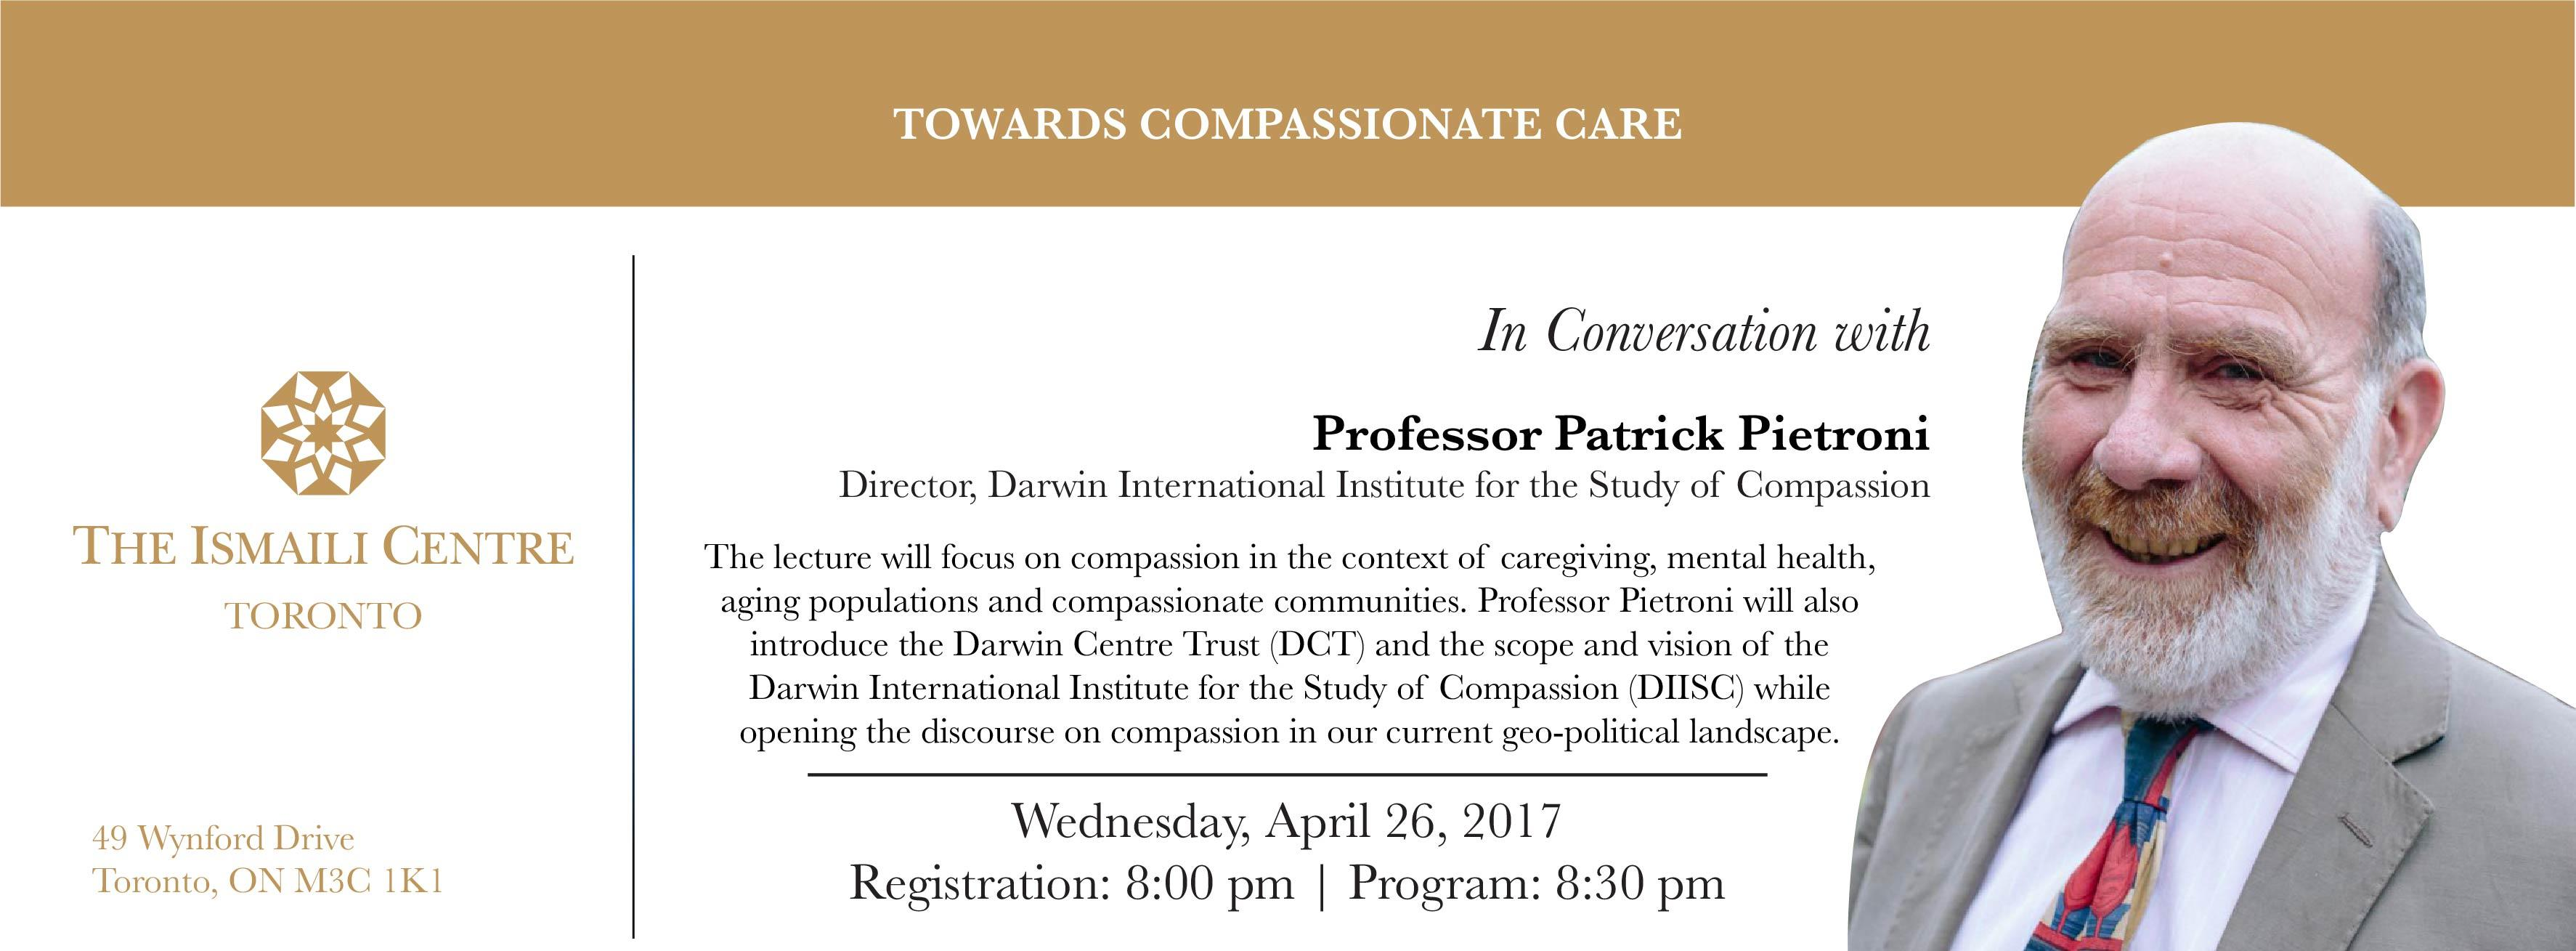 Towards Compassionate Care